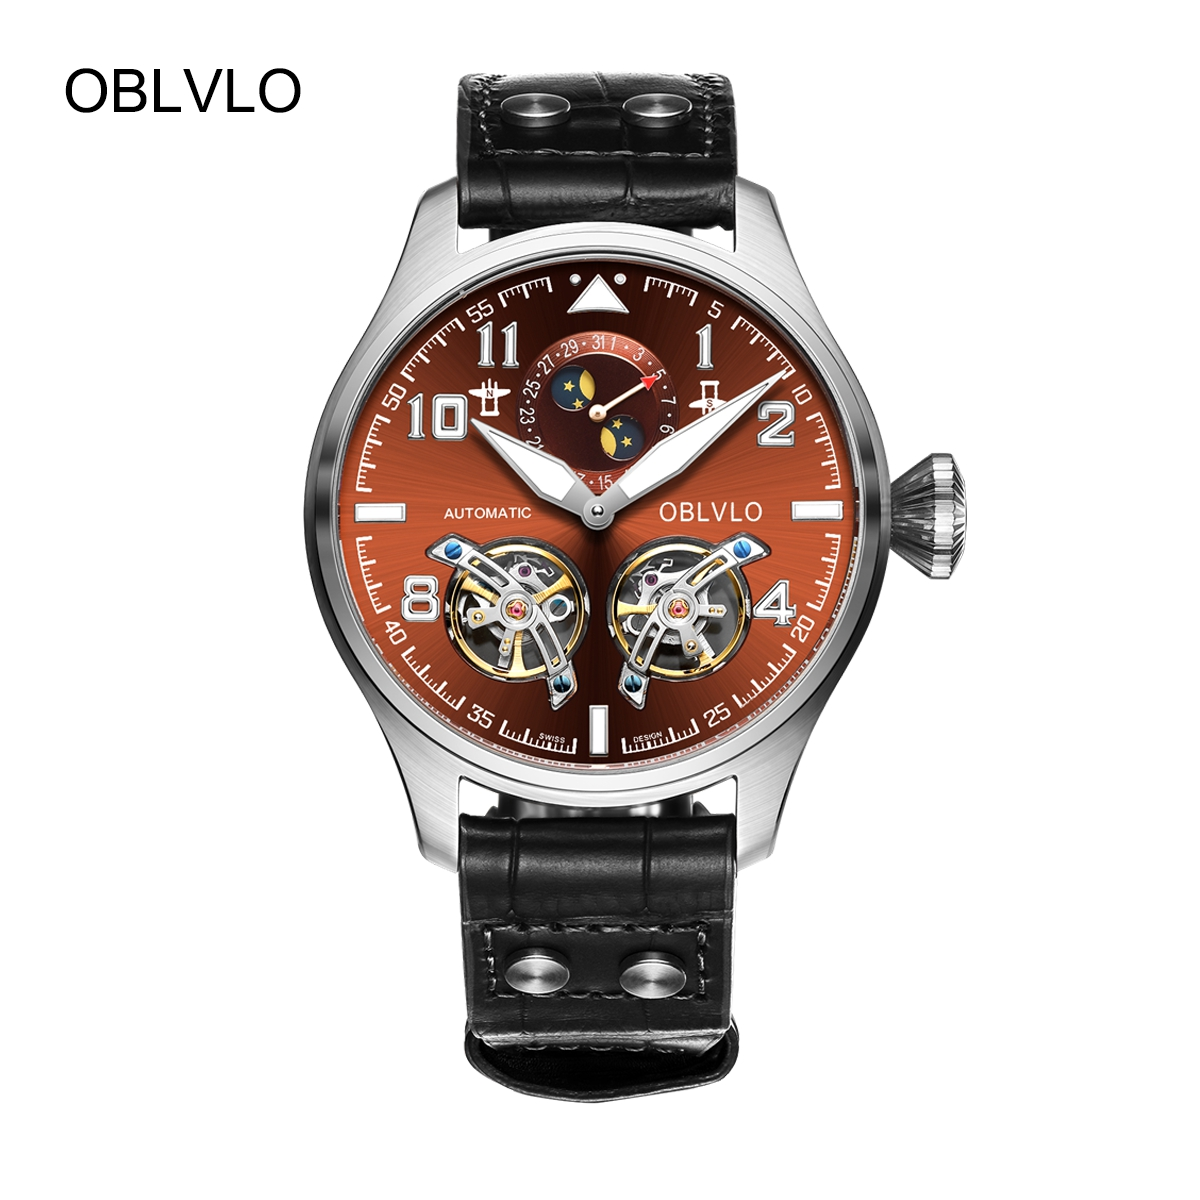 OBLVLO Fashion Mens Watches Steel Automatic Watch Tourbillon Date Leather Strap Watch OBL8232-YSB